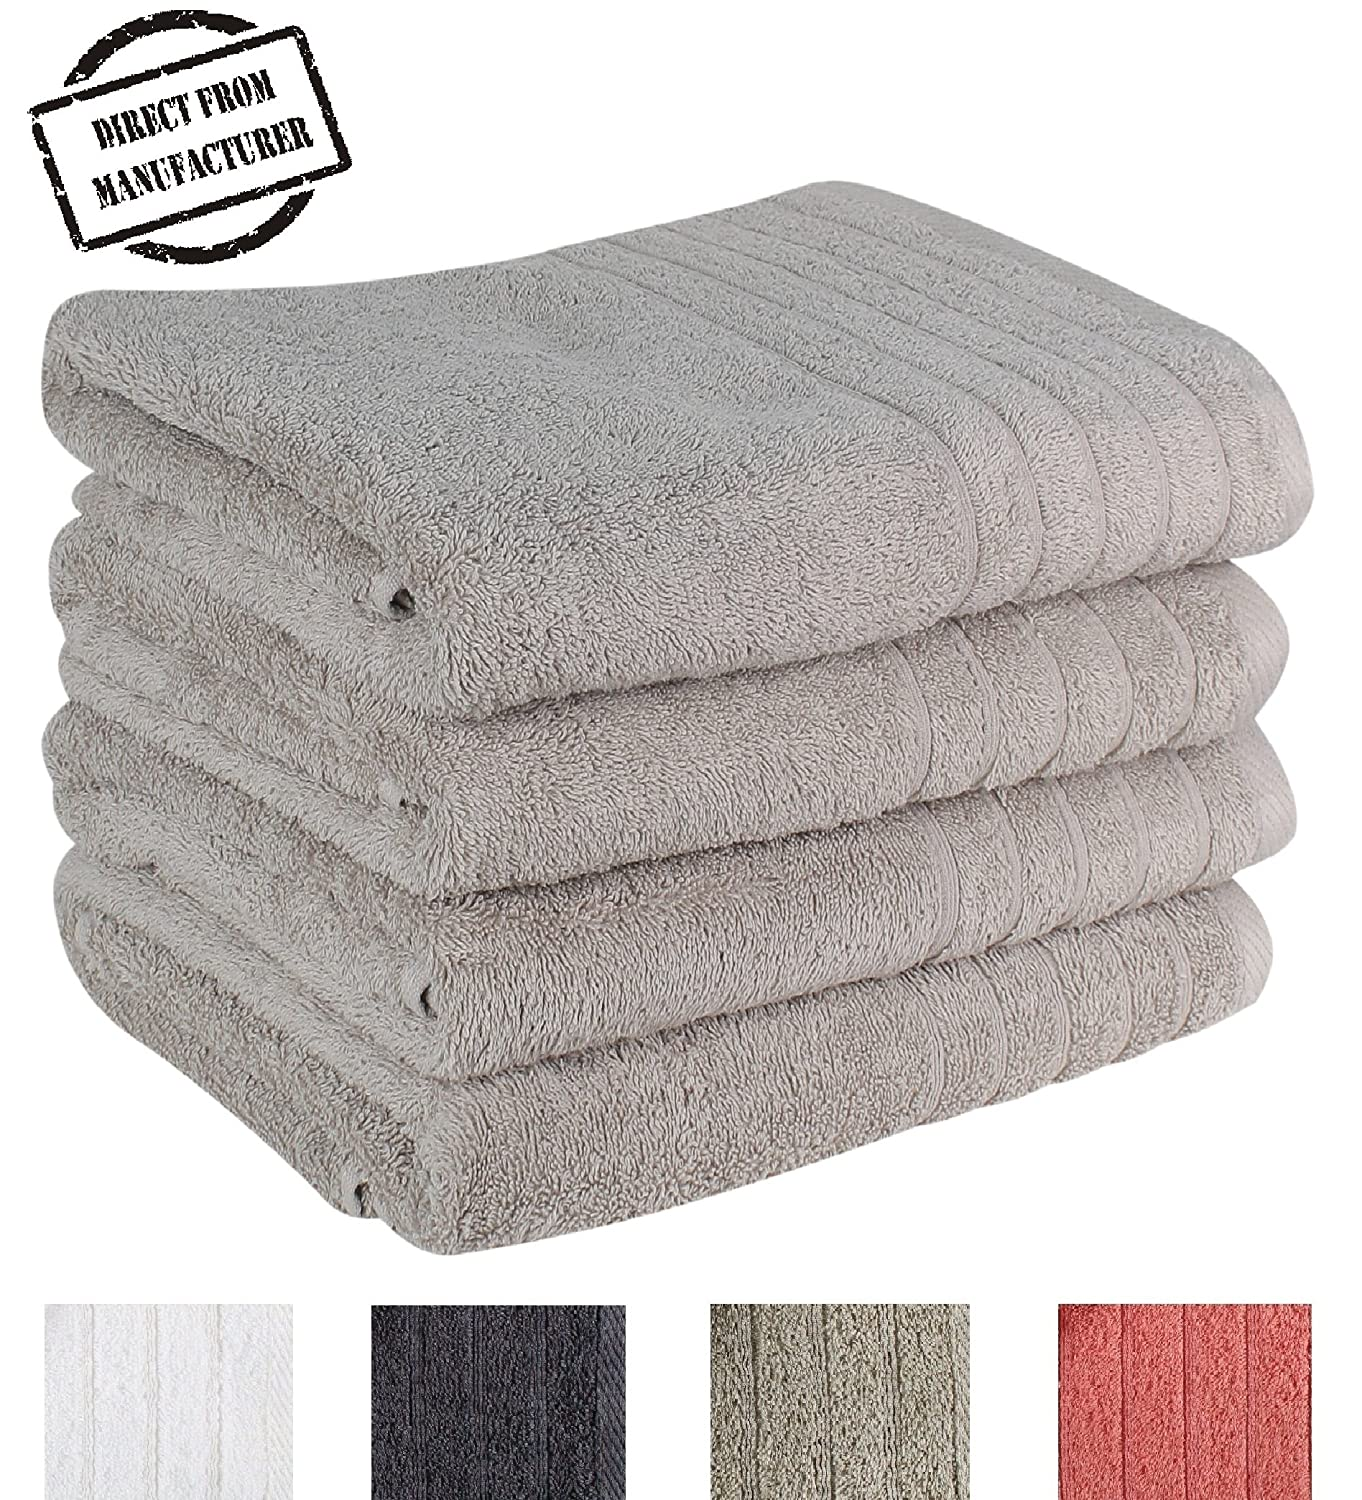 """Avira Home Premium Bath Towel Set (Pack of 4, 27"""" x 49"""") 100% Ring-Spun Cotton Towels for Hotel - Spa, 600 GSM, Soft, Highly Absorbent, Machine Washable"""